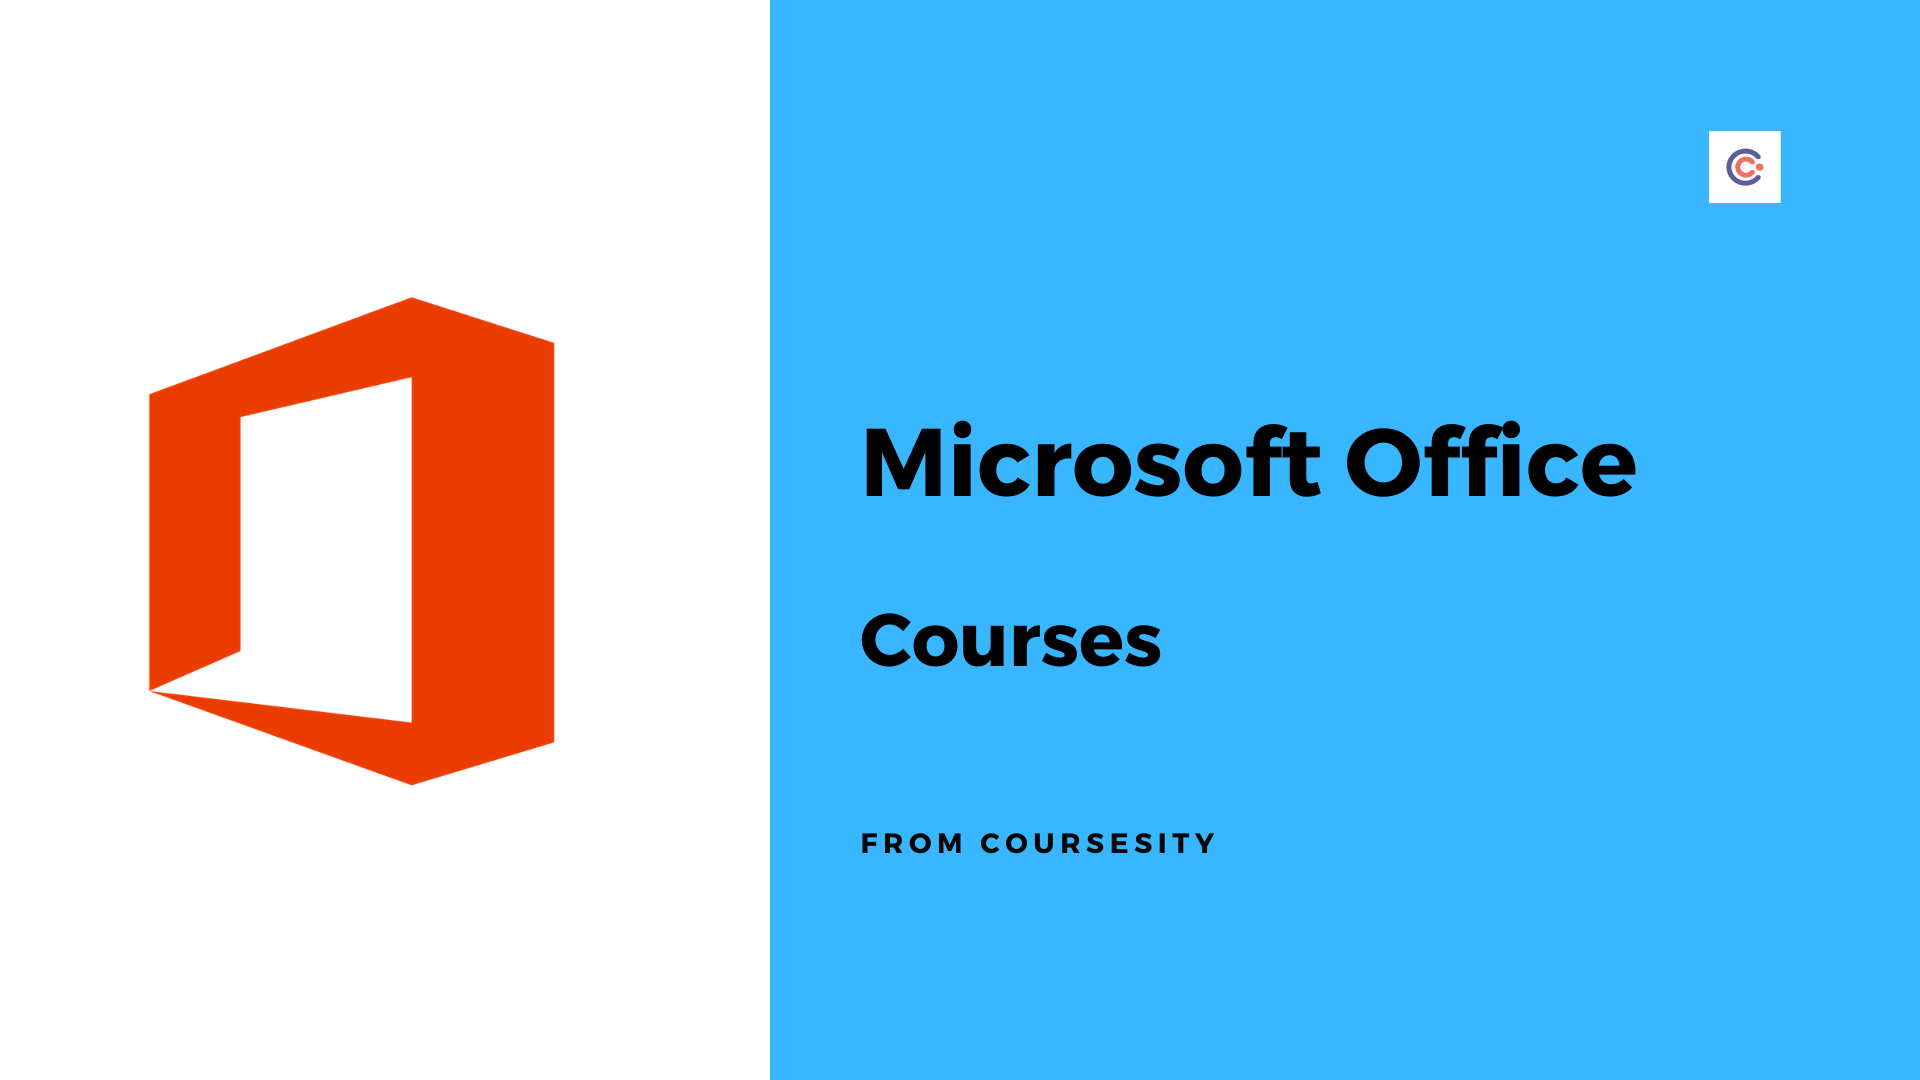 7 Best Microsoft Office Classes & Courses - Learn Microsoft Office Online